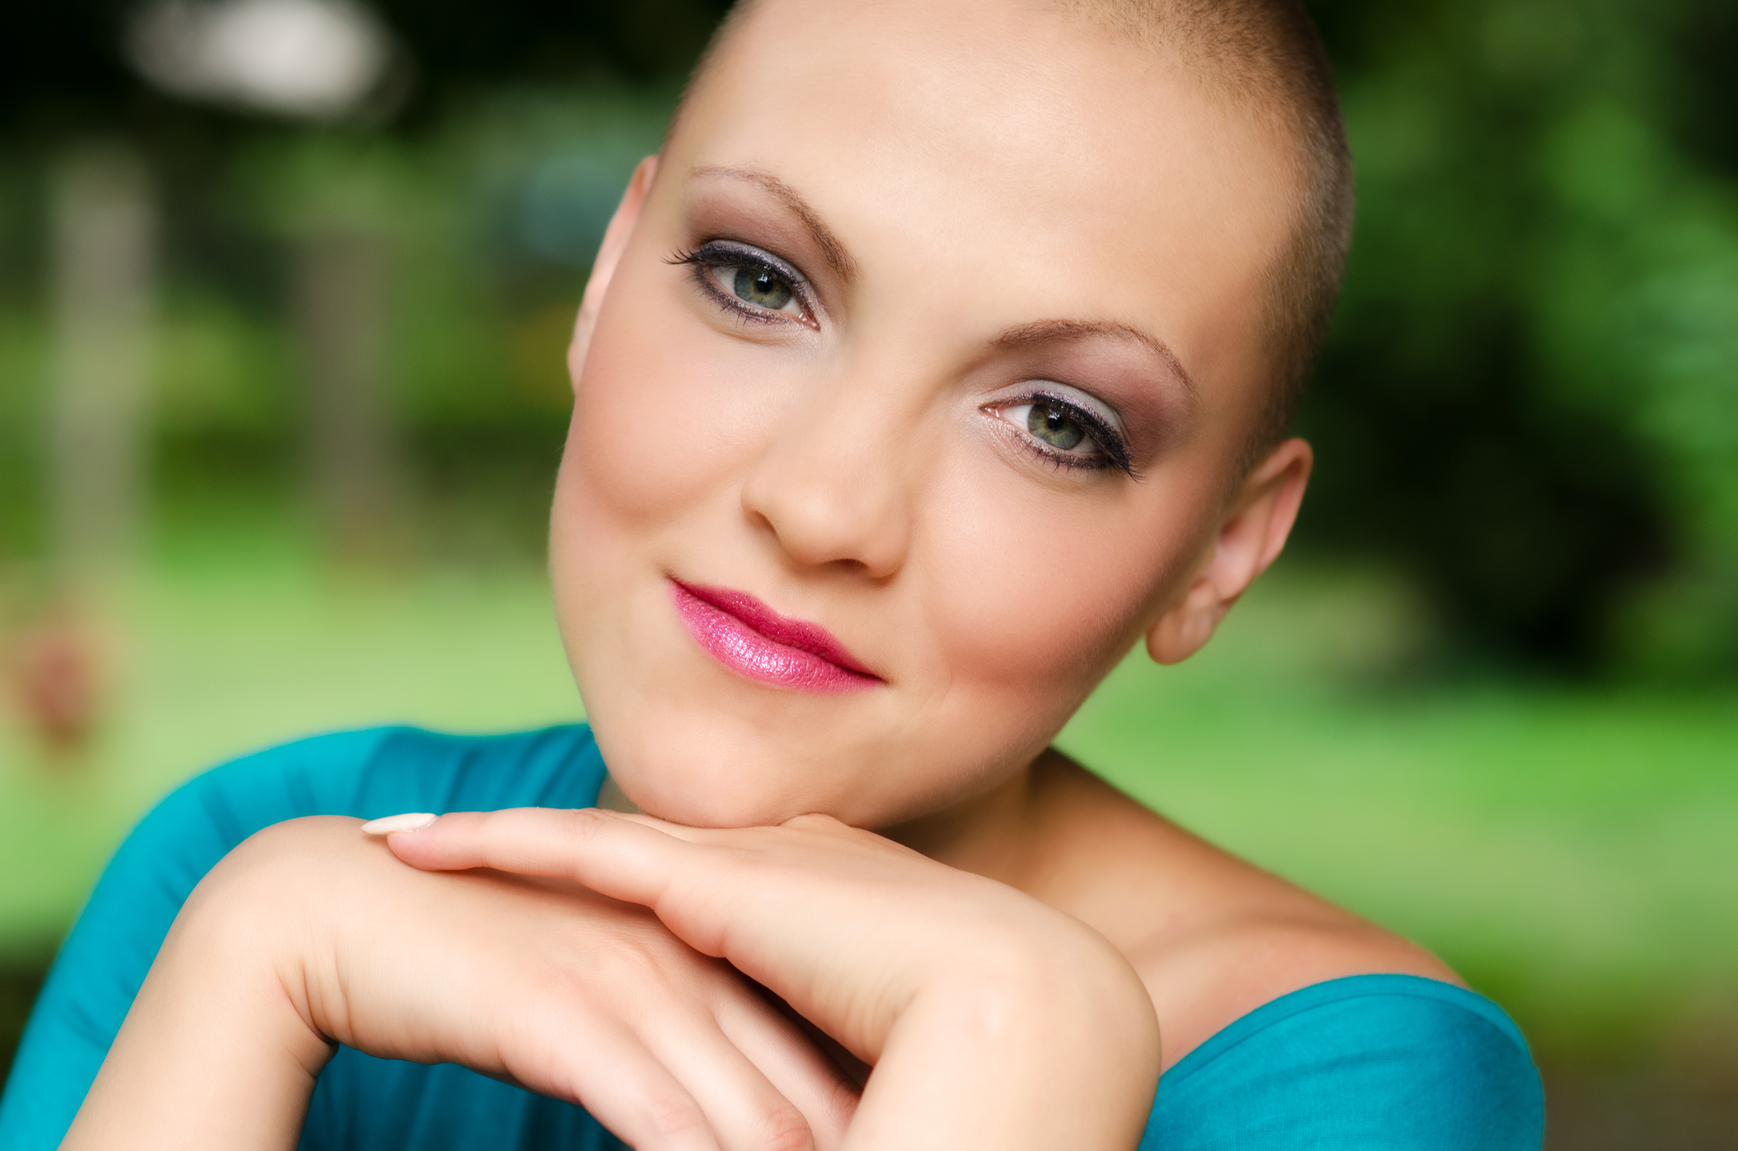 A Holistic Approach To Fight Cancer-What Your Doctor May Not Tell You